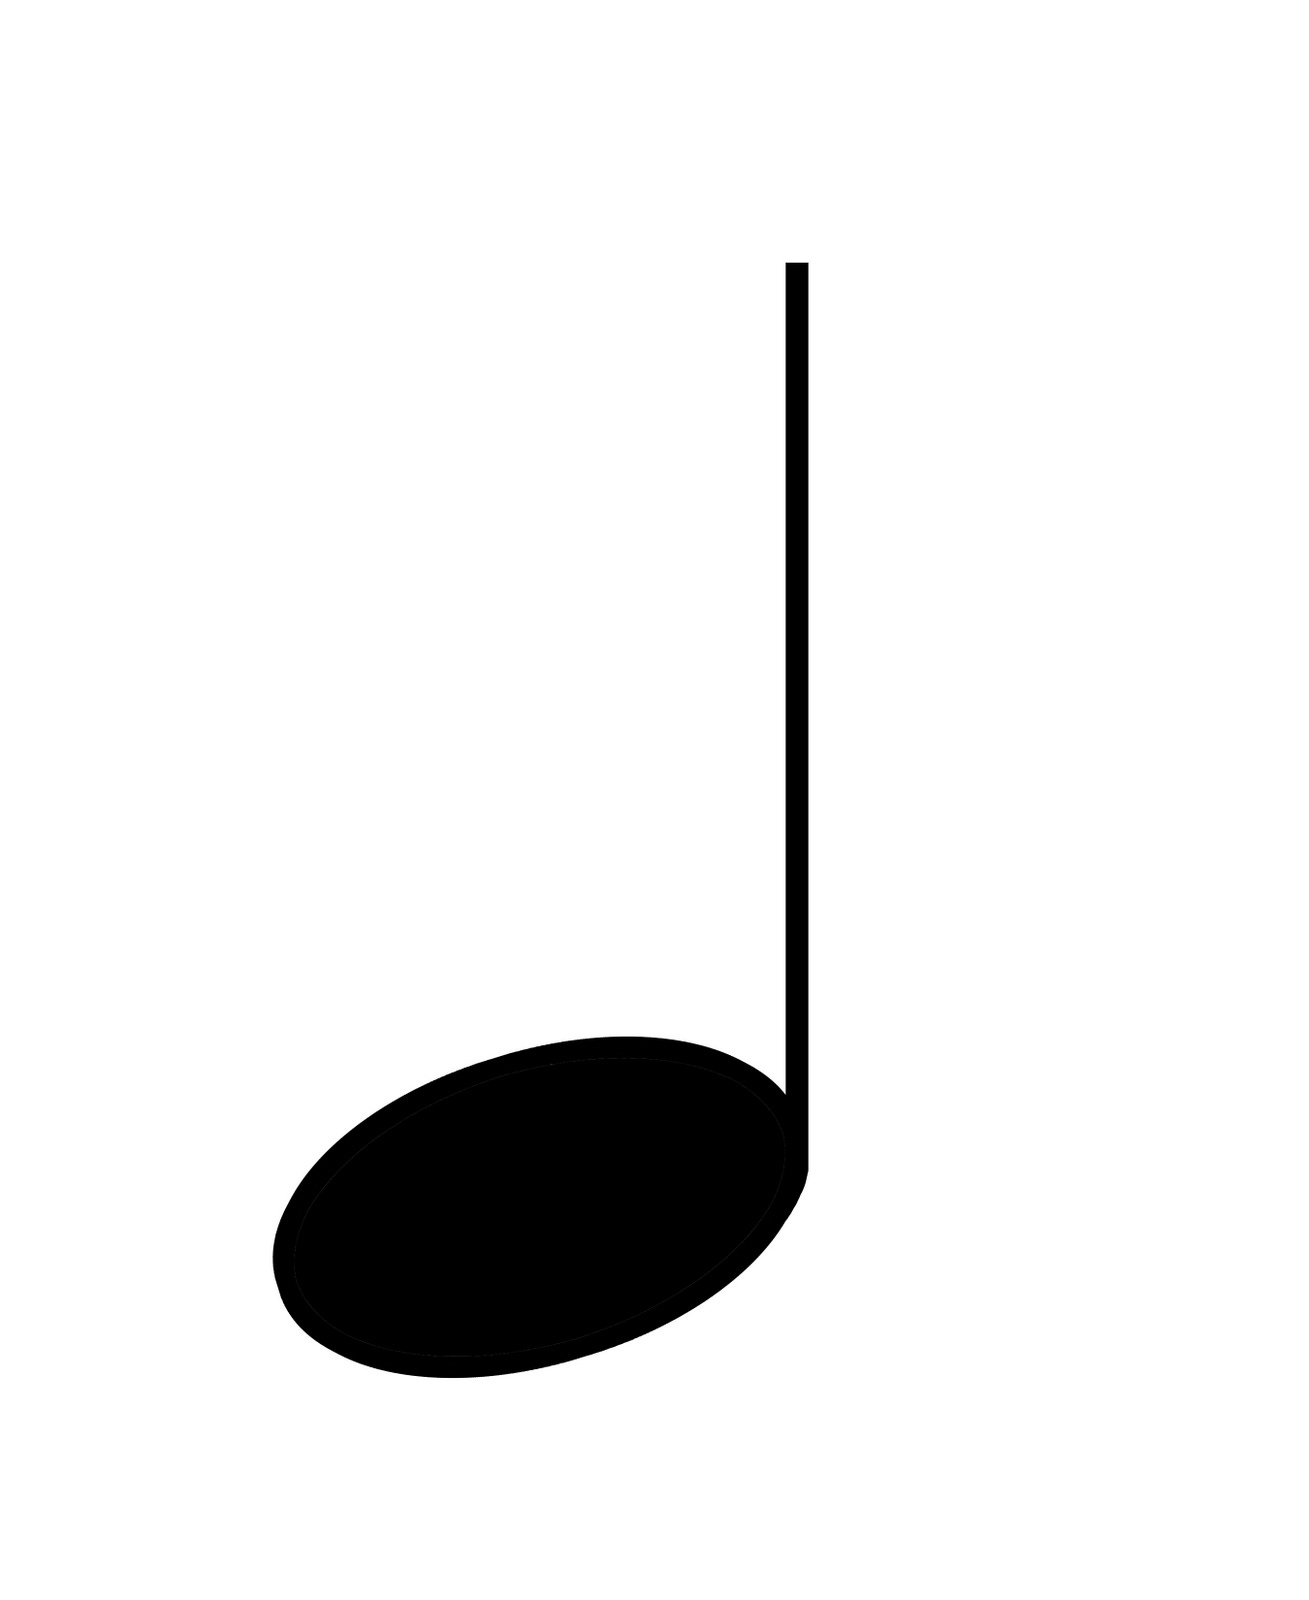 Quarter Note Symbol - ClipArt Best